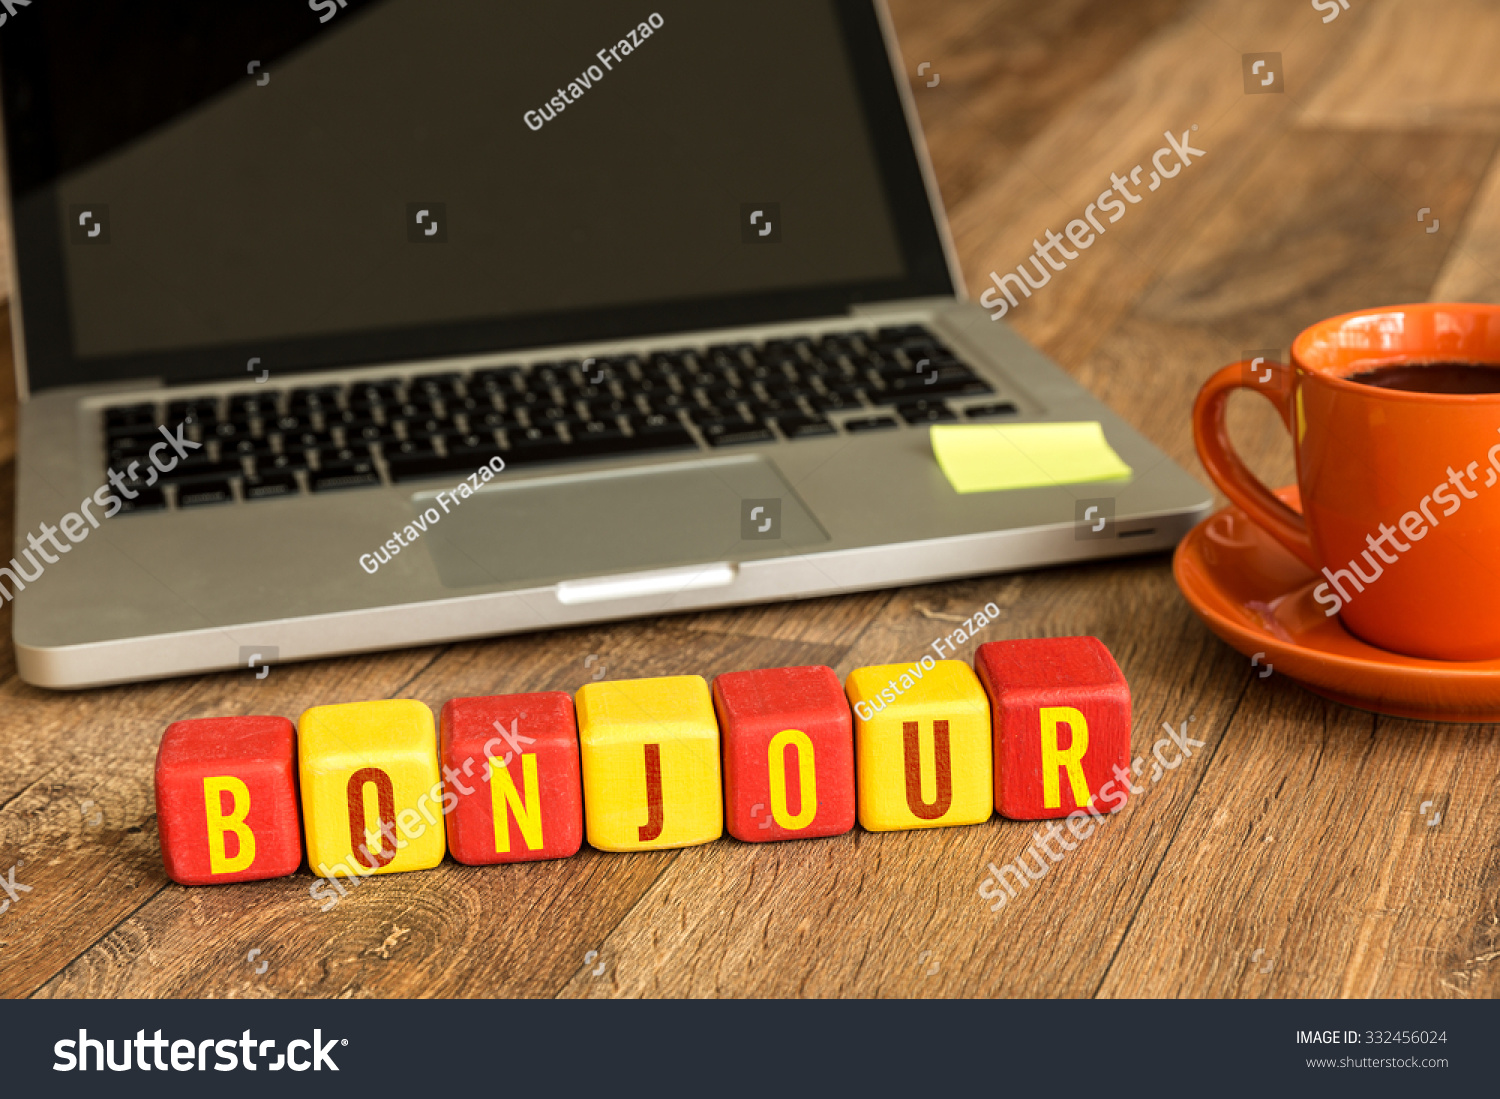 Good Morning In French Written On Stock Photo Edit Now 332456024